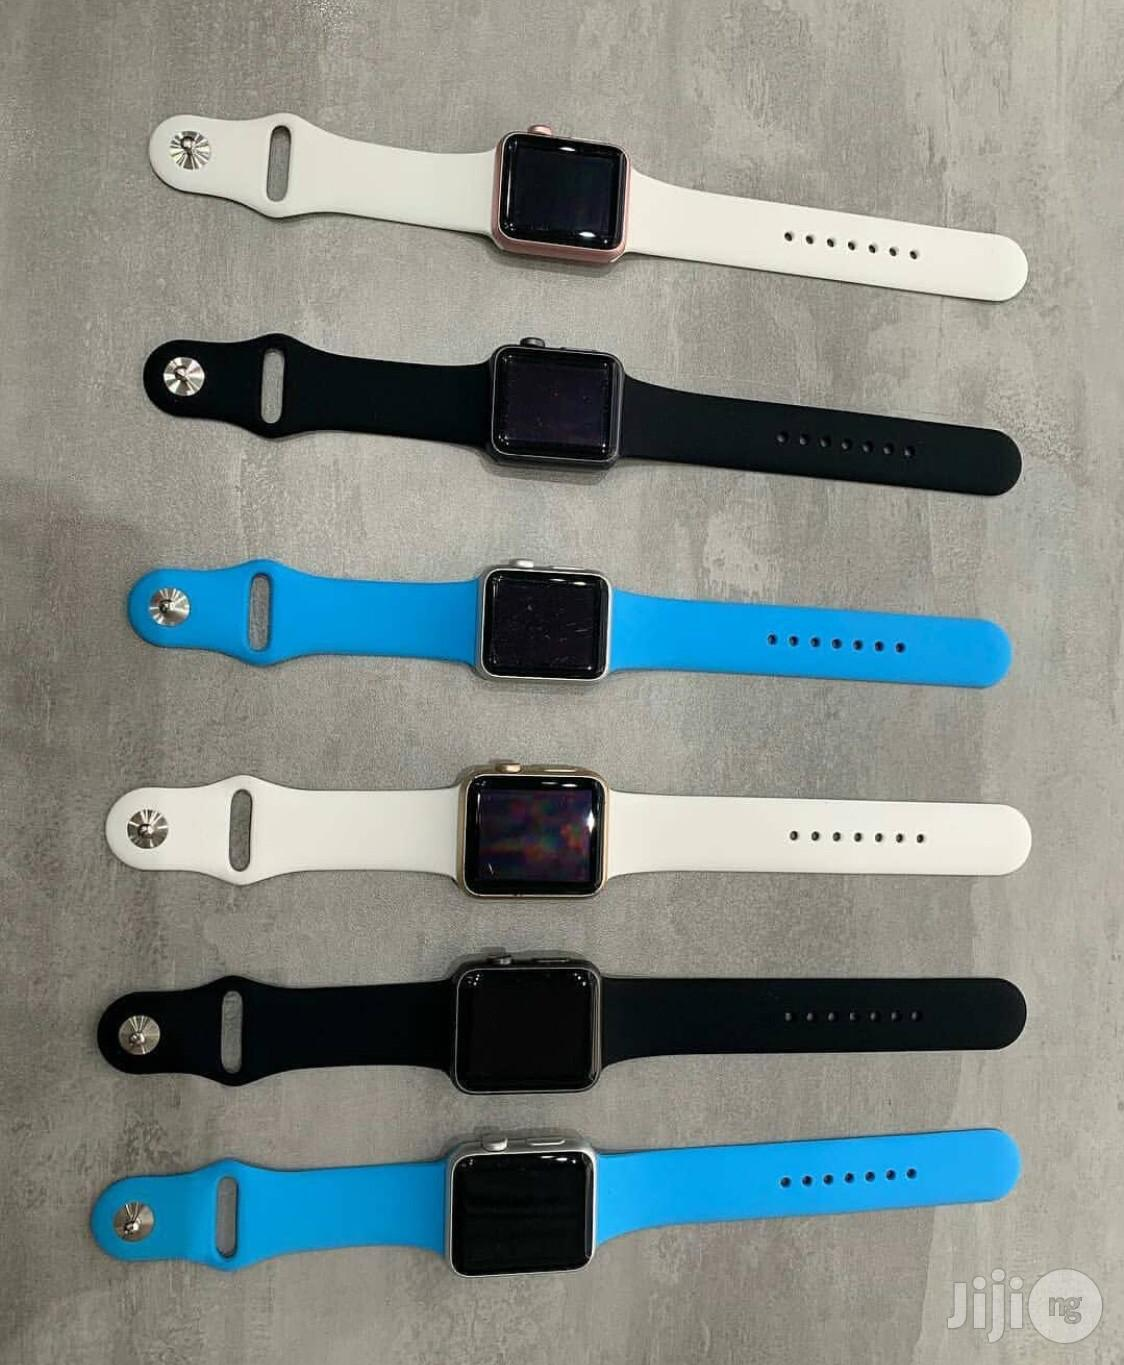 U.K Used Apple Watch Series 2 | Smart Watches & Trackers for sale in Port-Harcourt, Rivers State, Nigeria